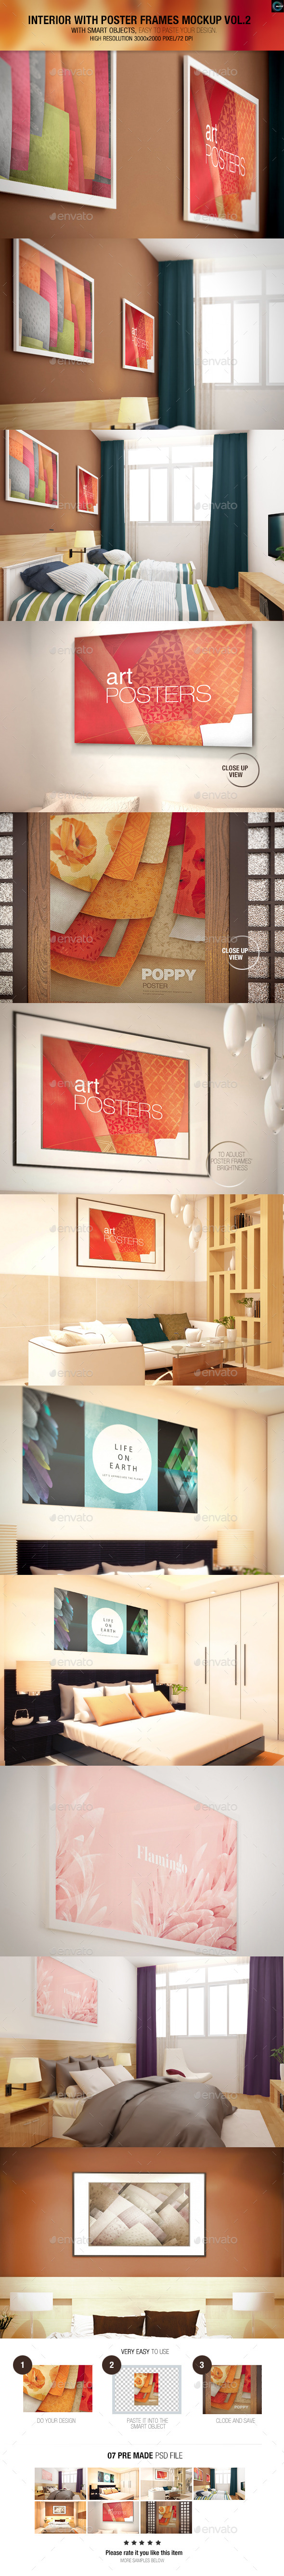 Interior With Poster Frames Mock-up Vol.2 - Miscellaneous Displays